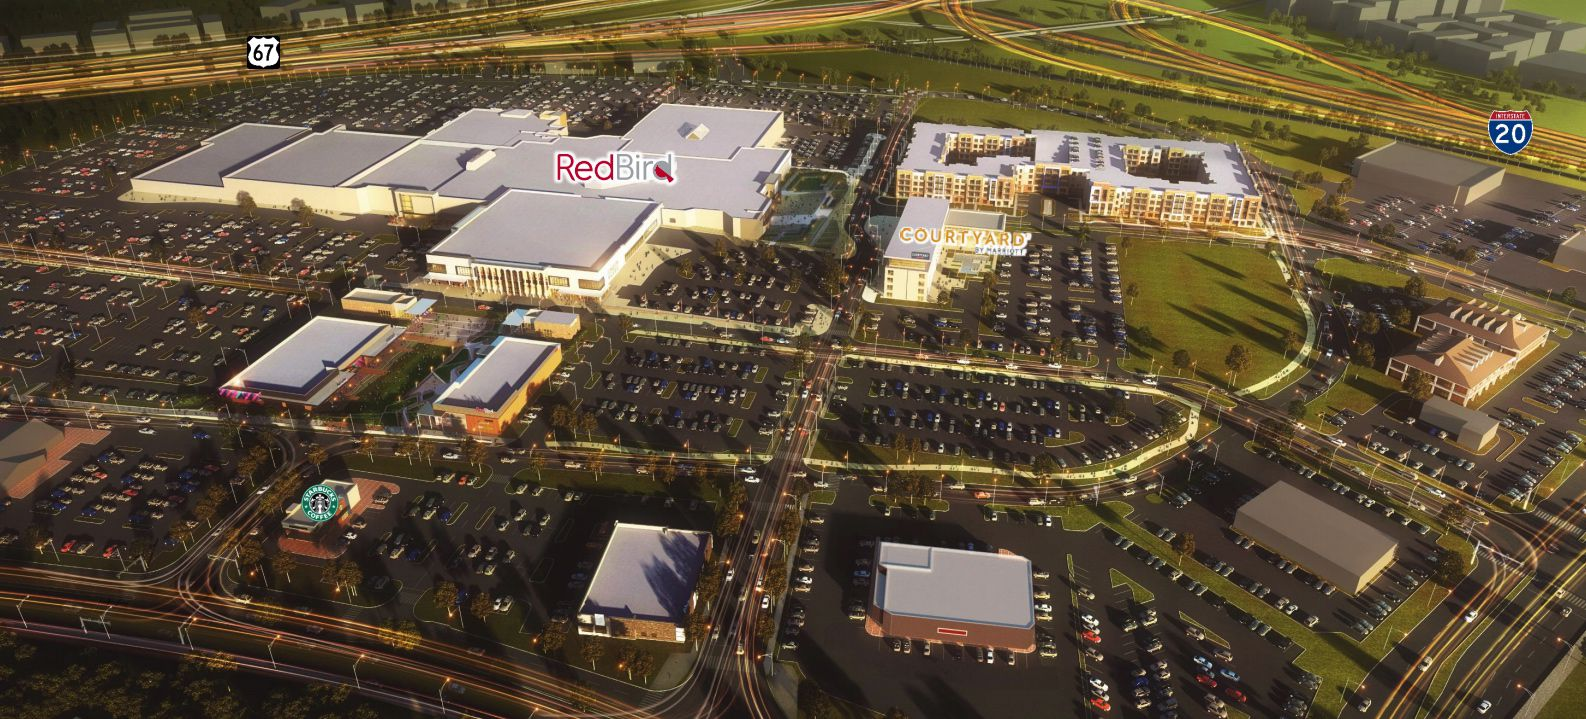 The 44-year-old RedBird Mall is being turned into a mixed-use project.